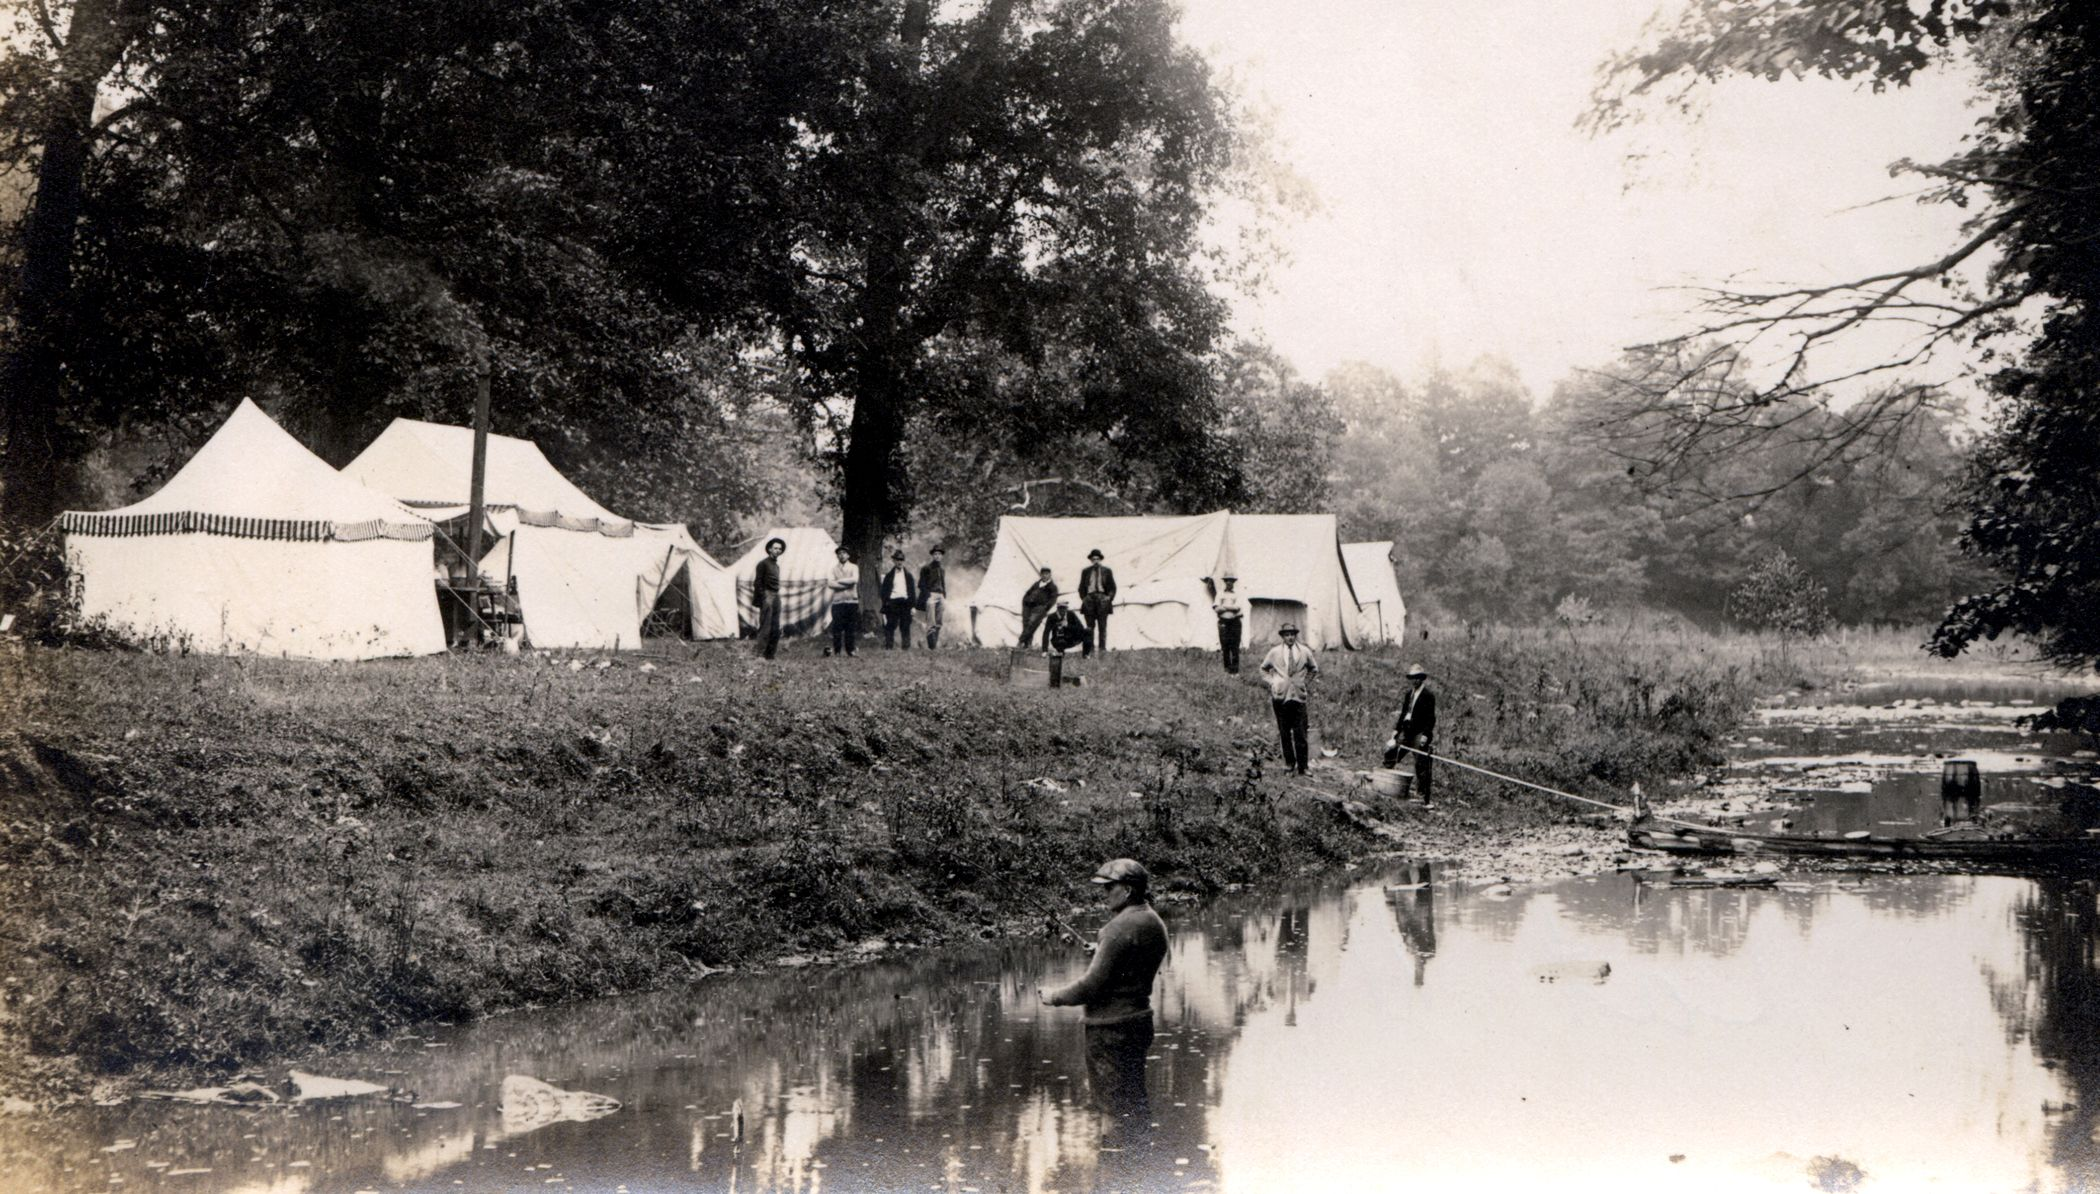 Pin on TBT Vintage Outdoor Photos